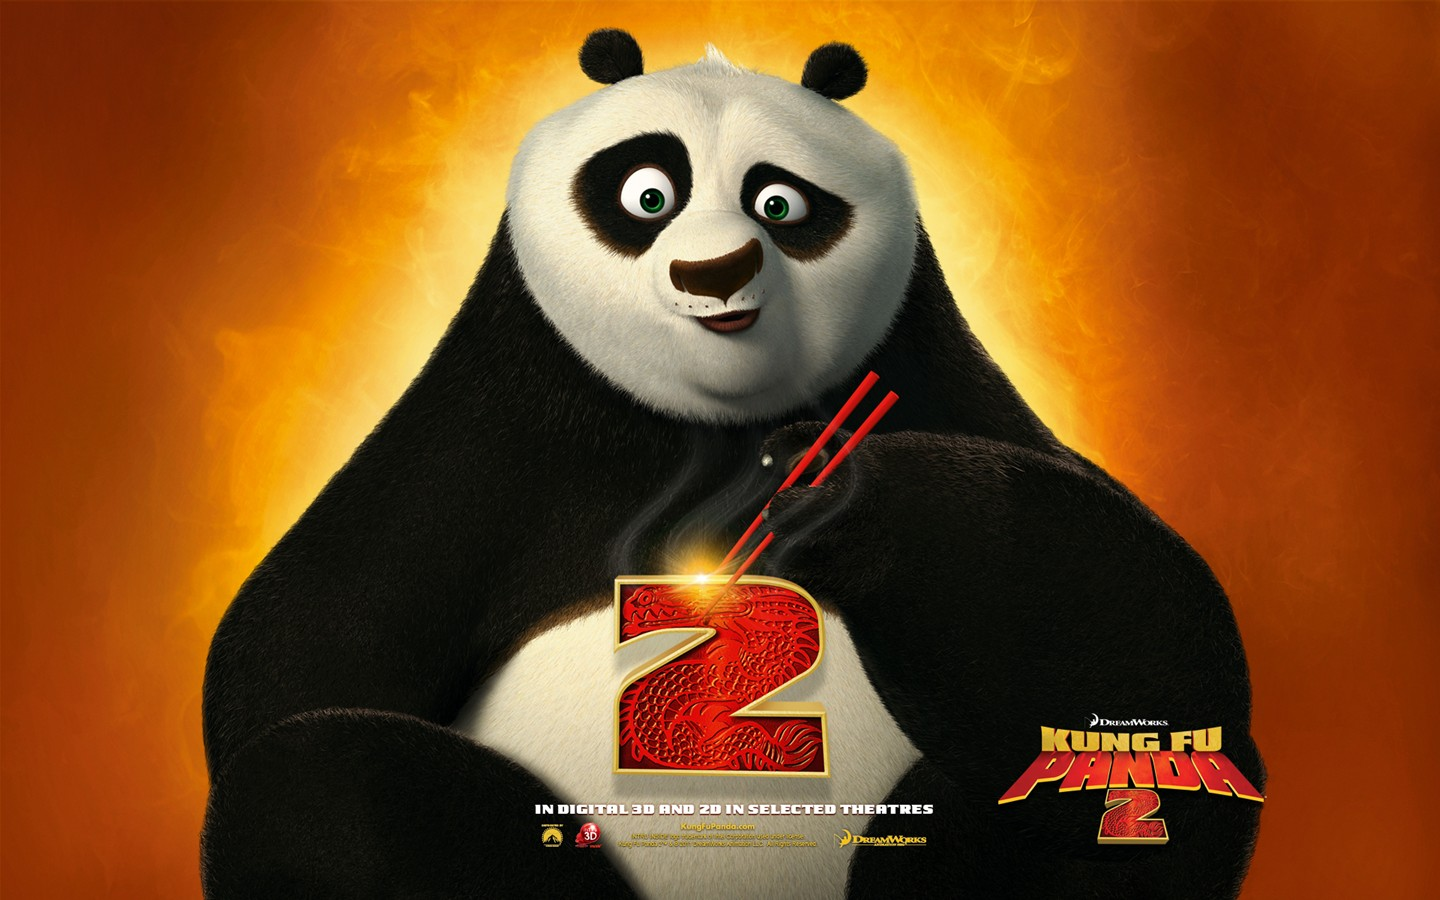 kung fu panda two 29426 - movie wallpapers - television / games